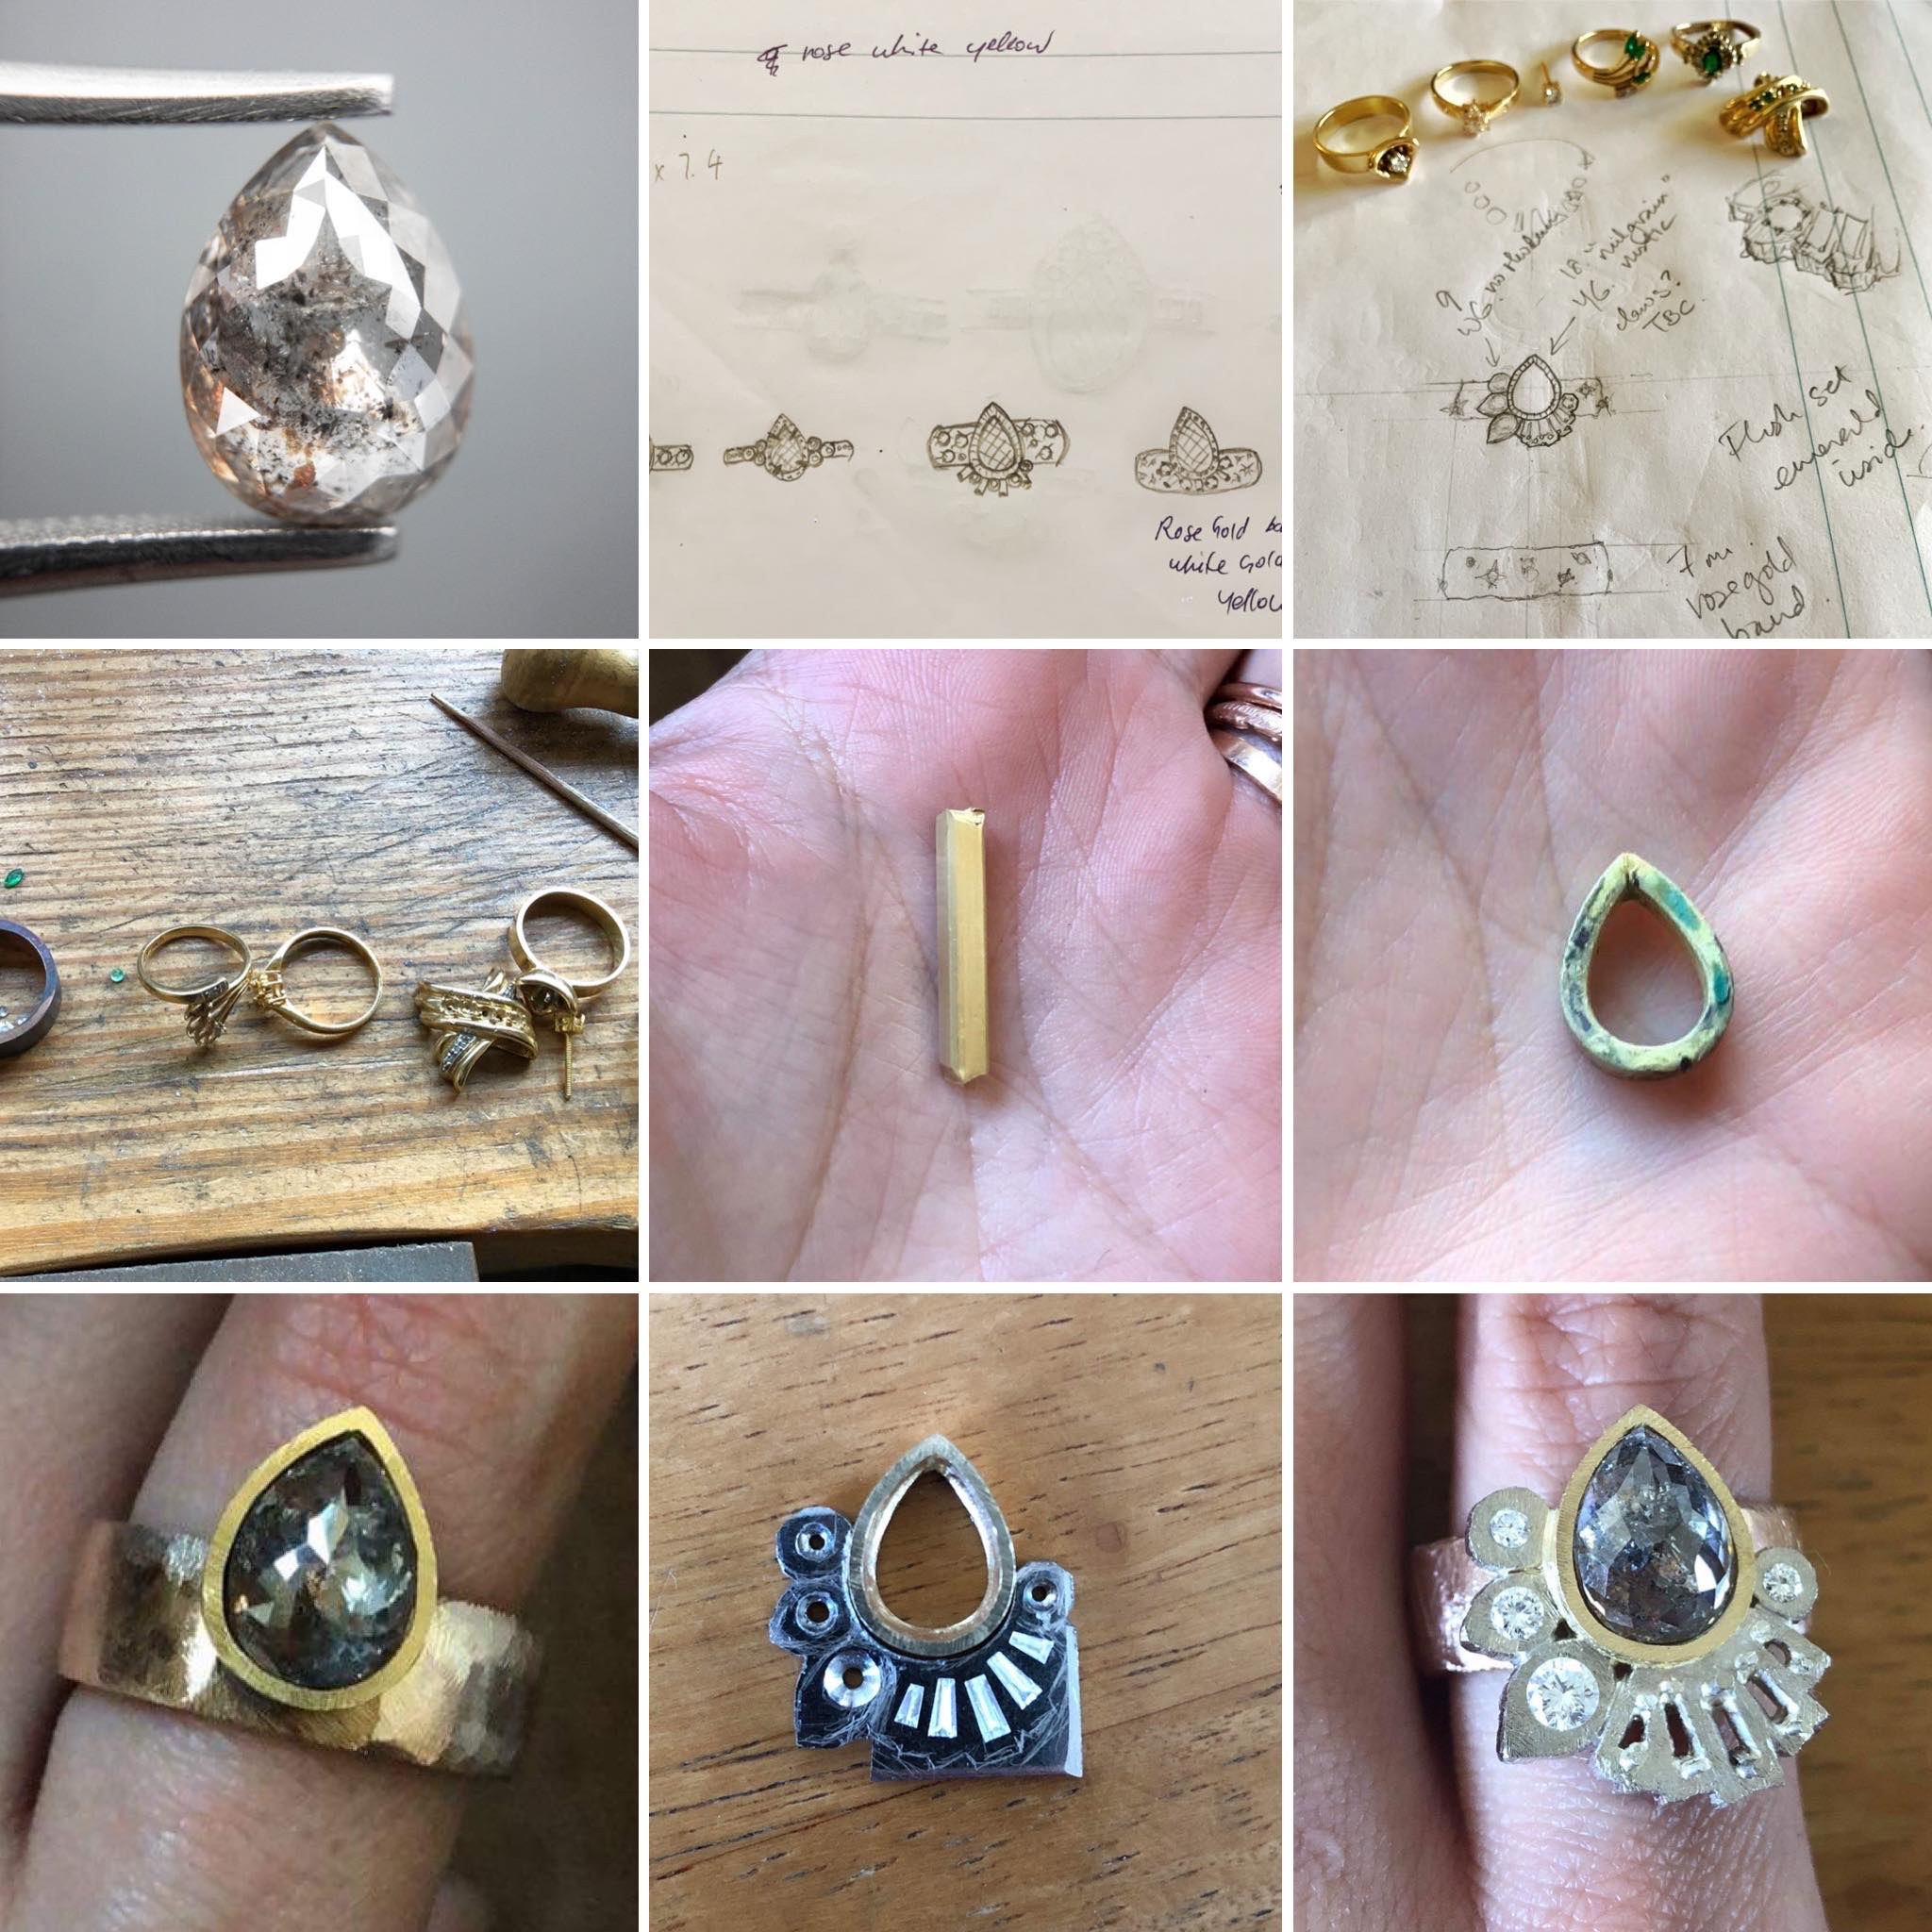 Salt and pepper pear shaped diamond remodelled ring from mum's old jewellery